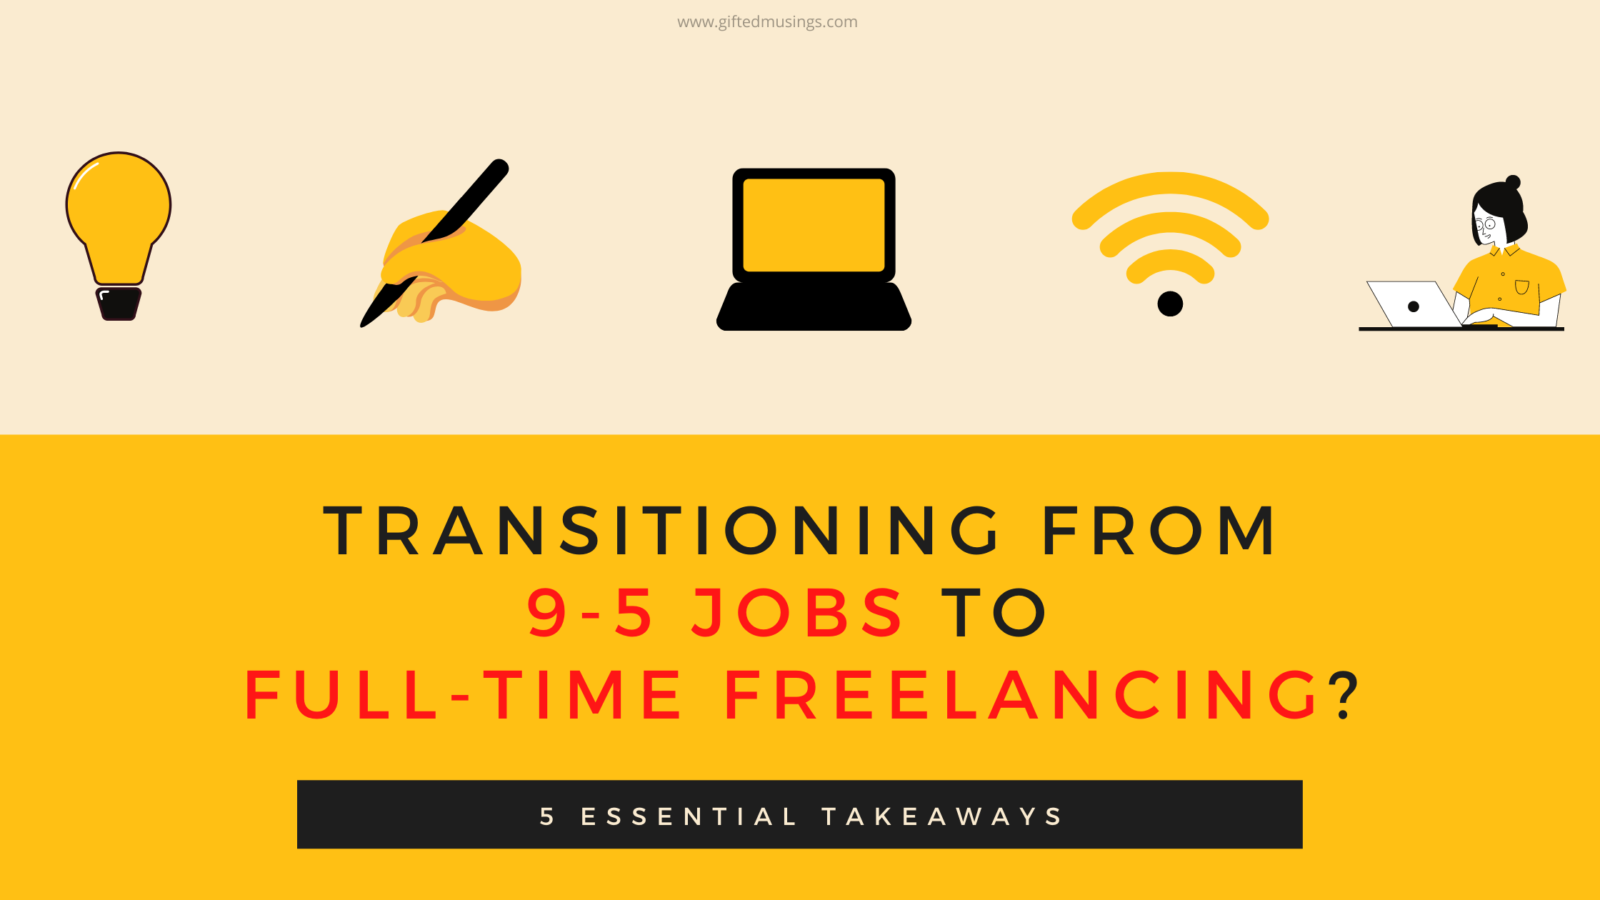 trnasition from 9 to 5 jobs to full time freelancing